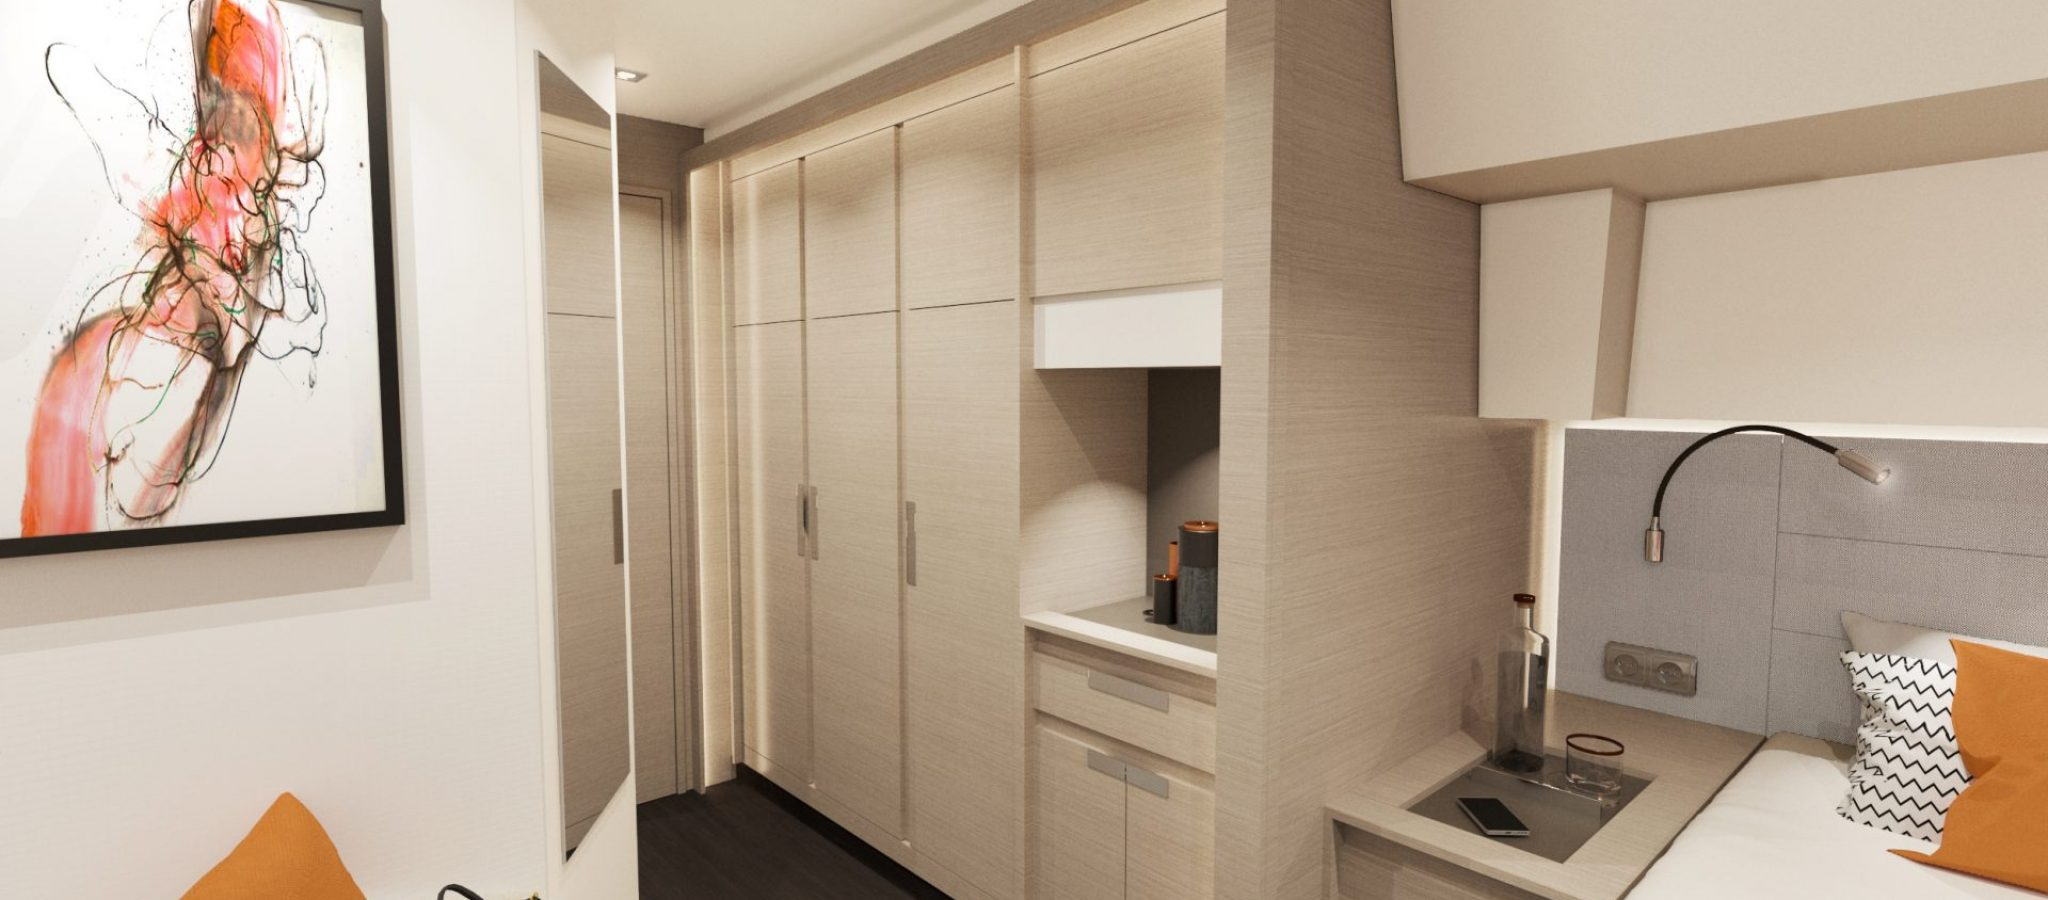 Fountaine-Pajot-New-51-Interiors-owners-suite-04